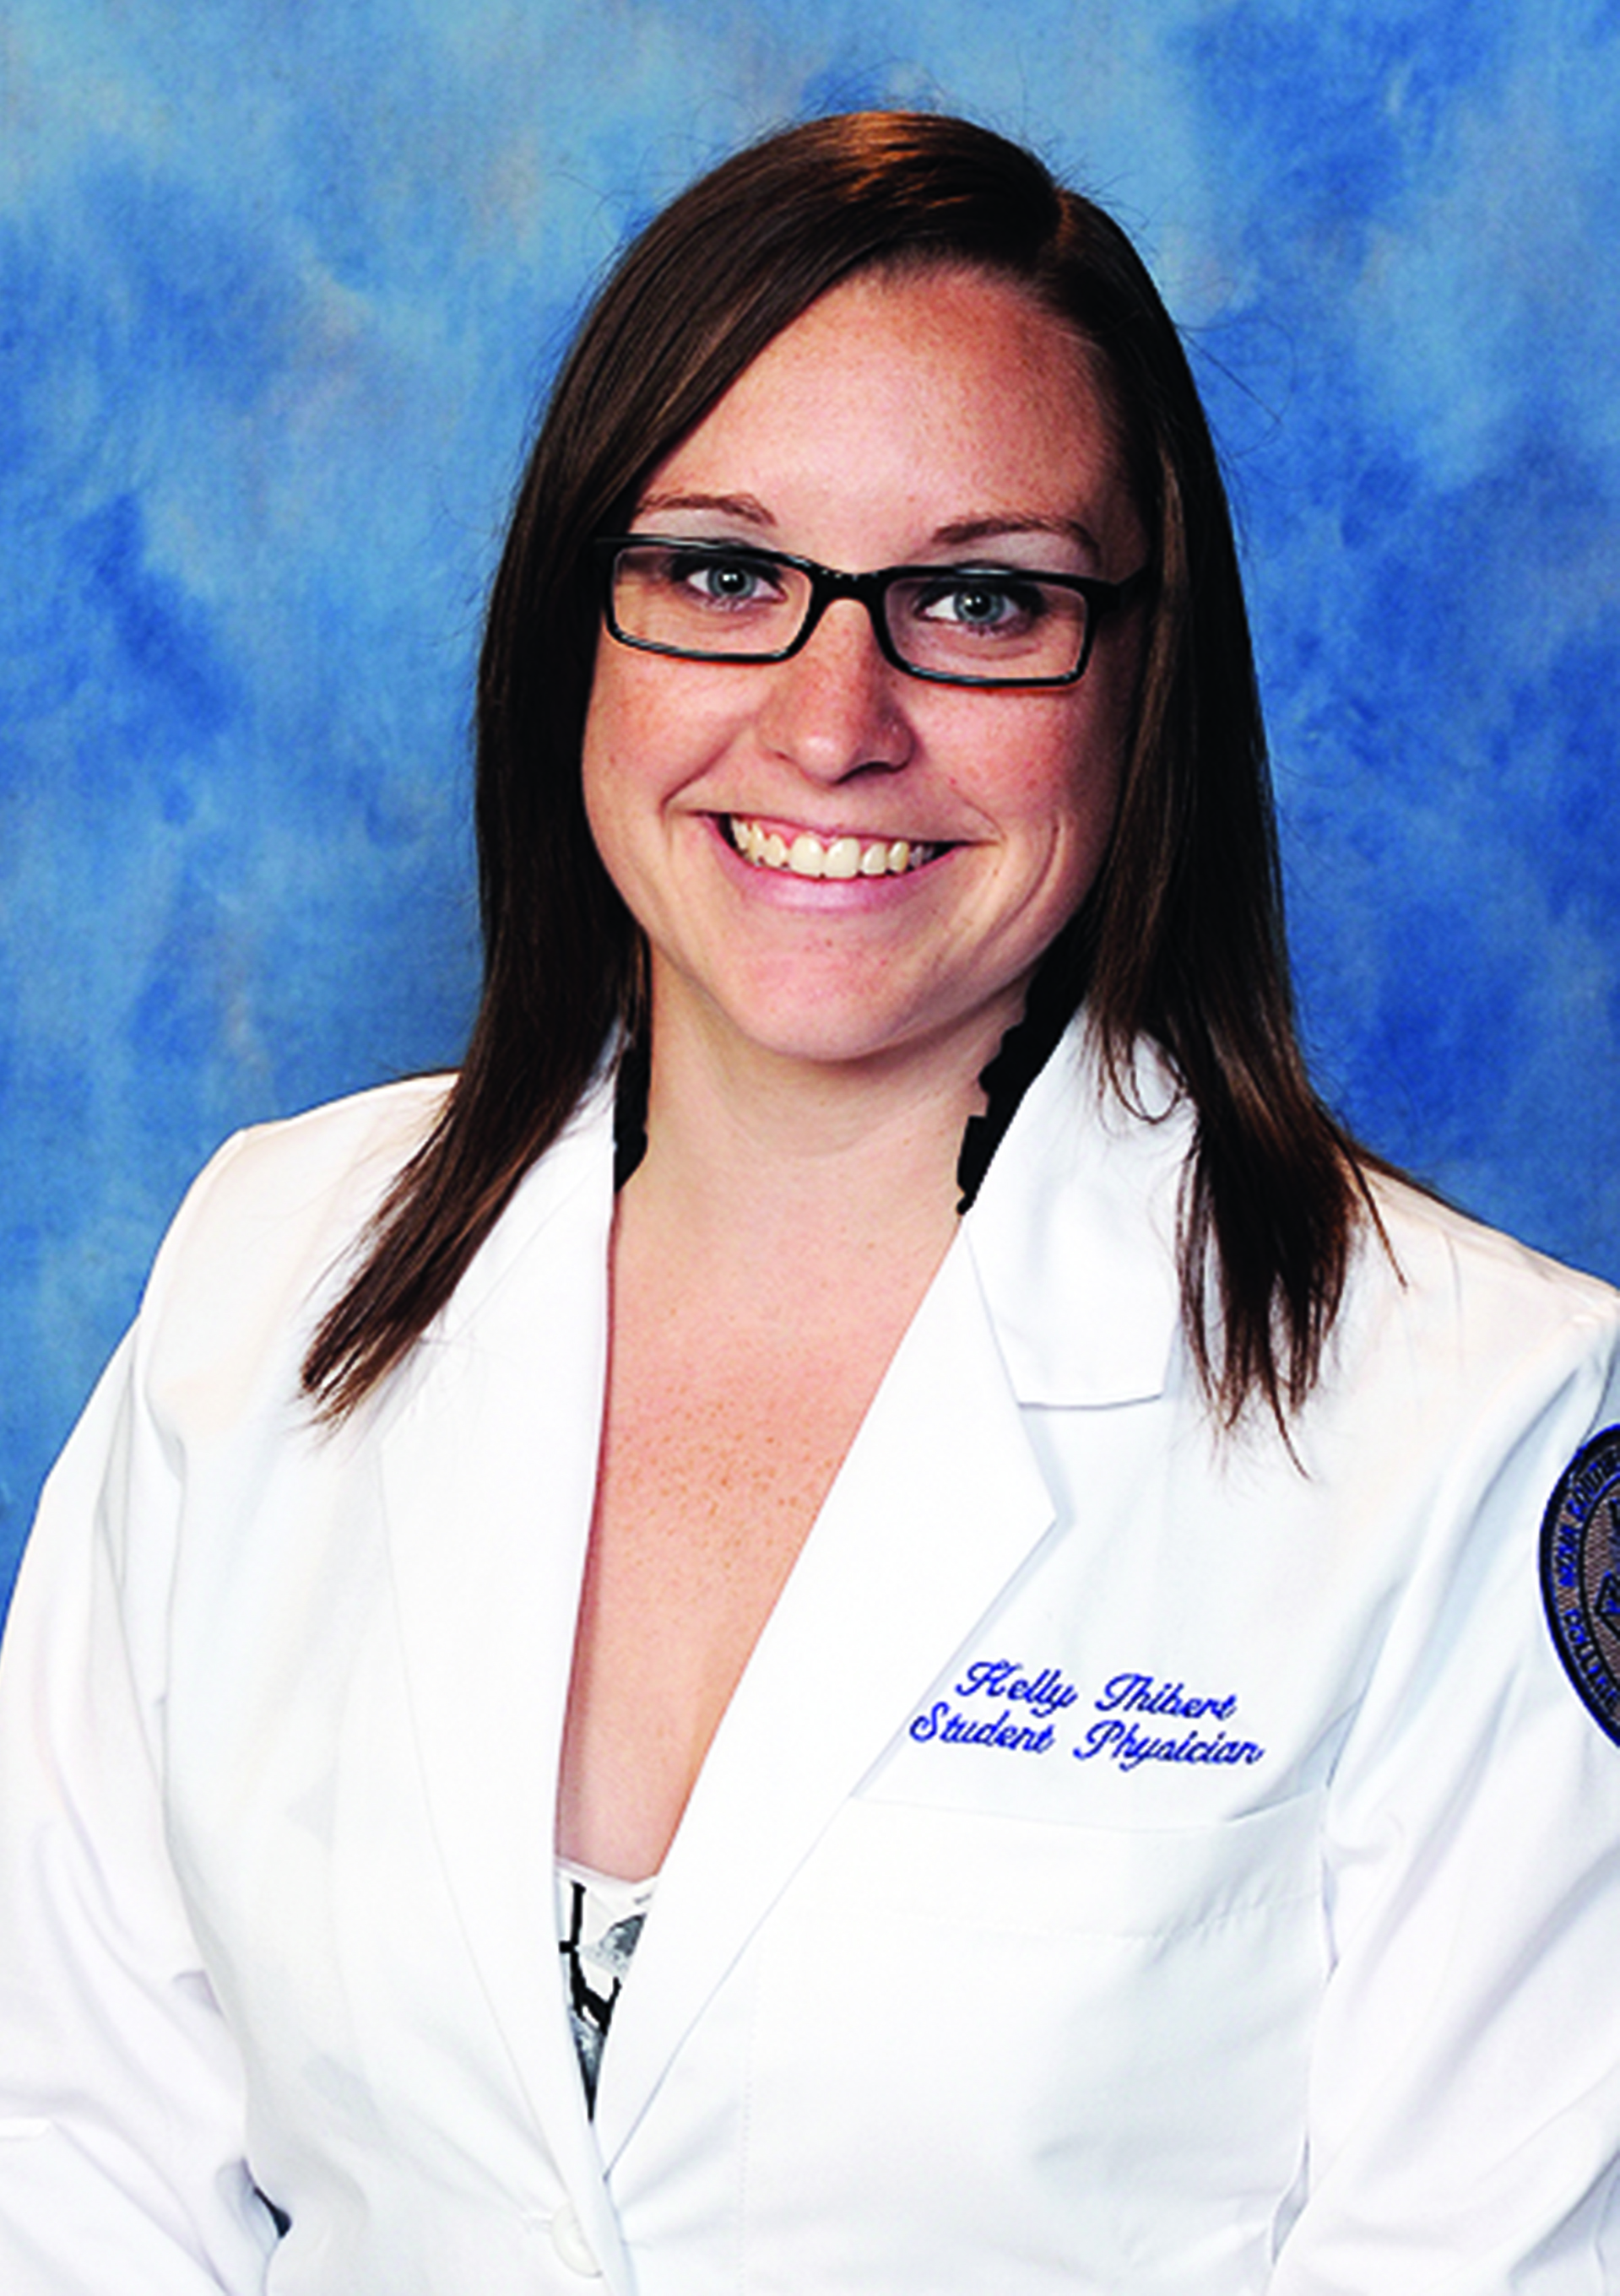 Osteopathic Medical student Kelly Thibert